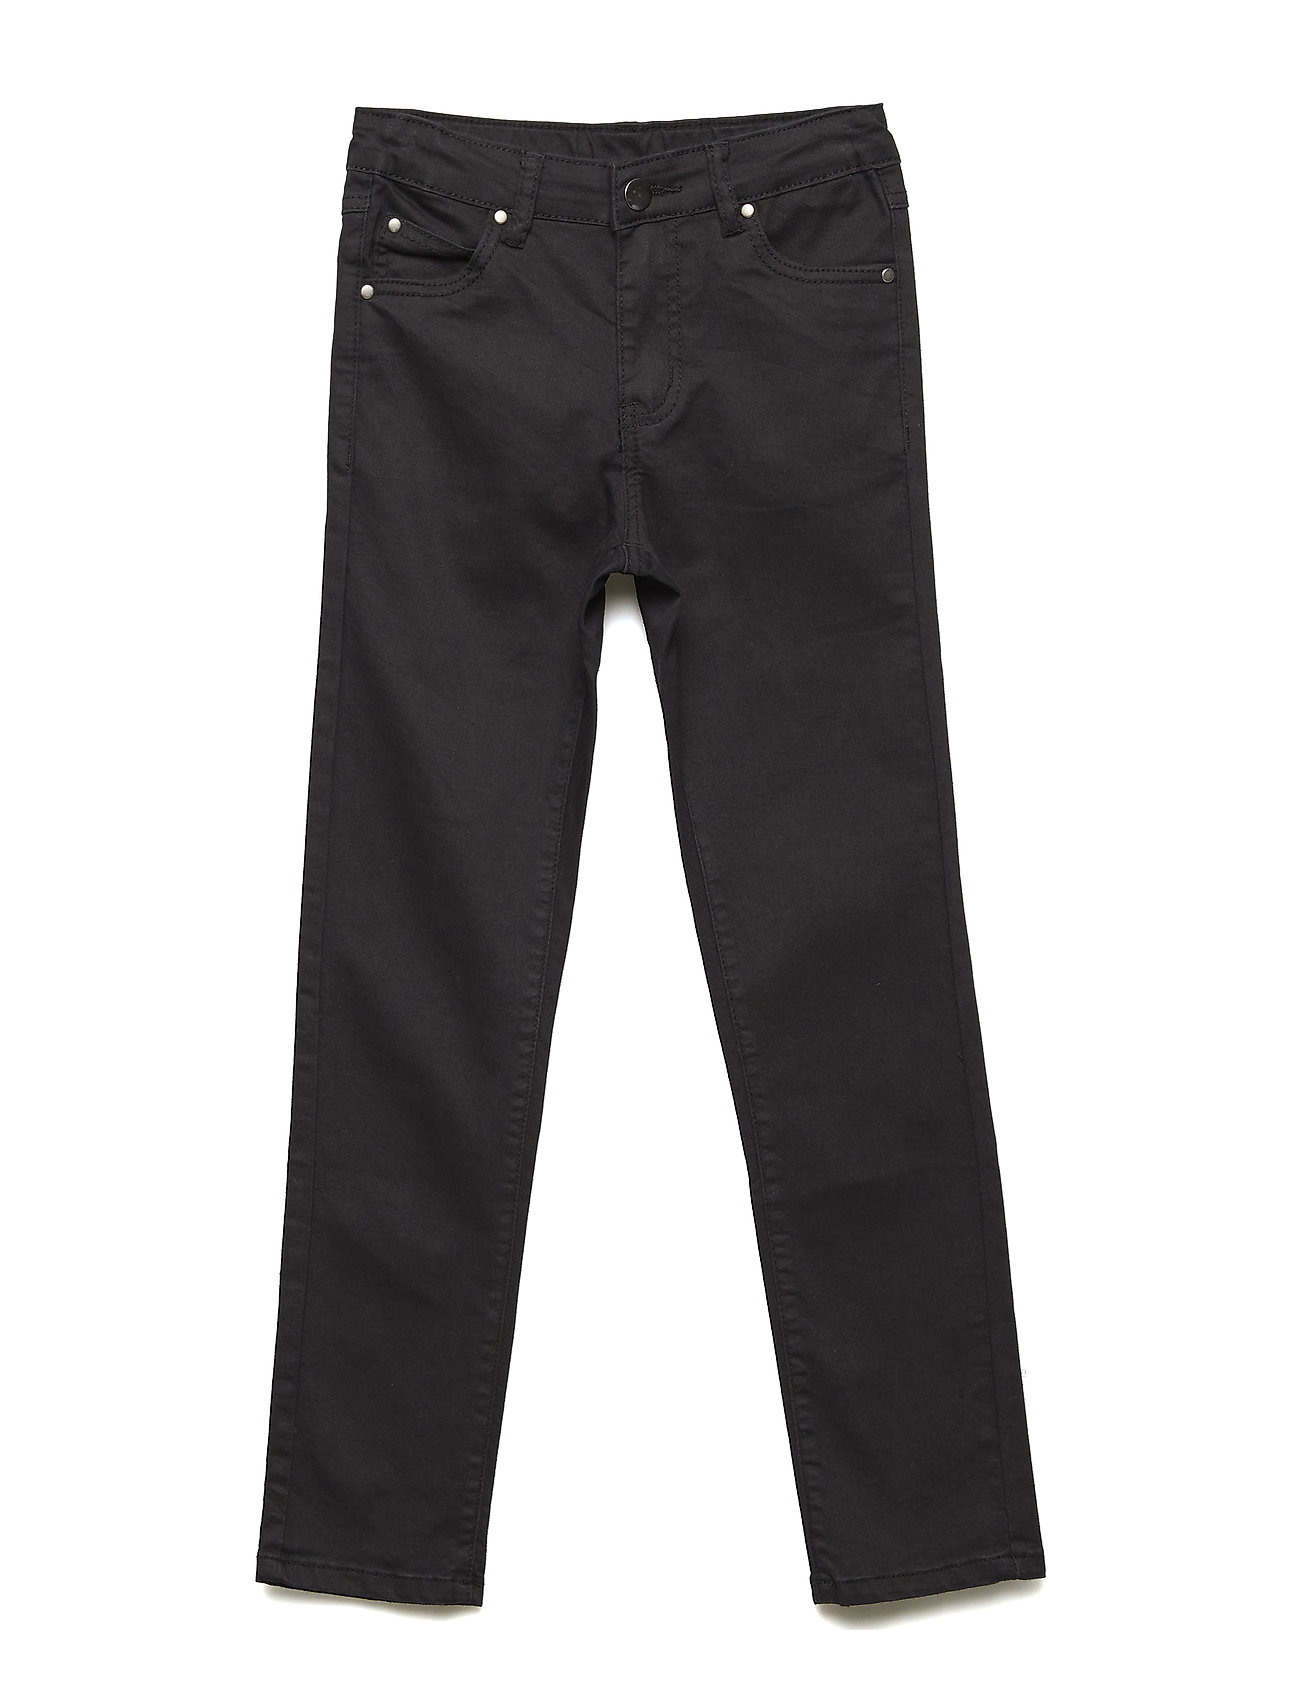 The New THE NEW SLIM JEANS - BLACK